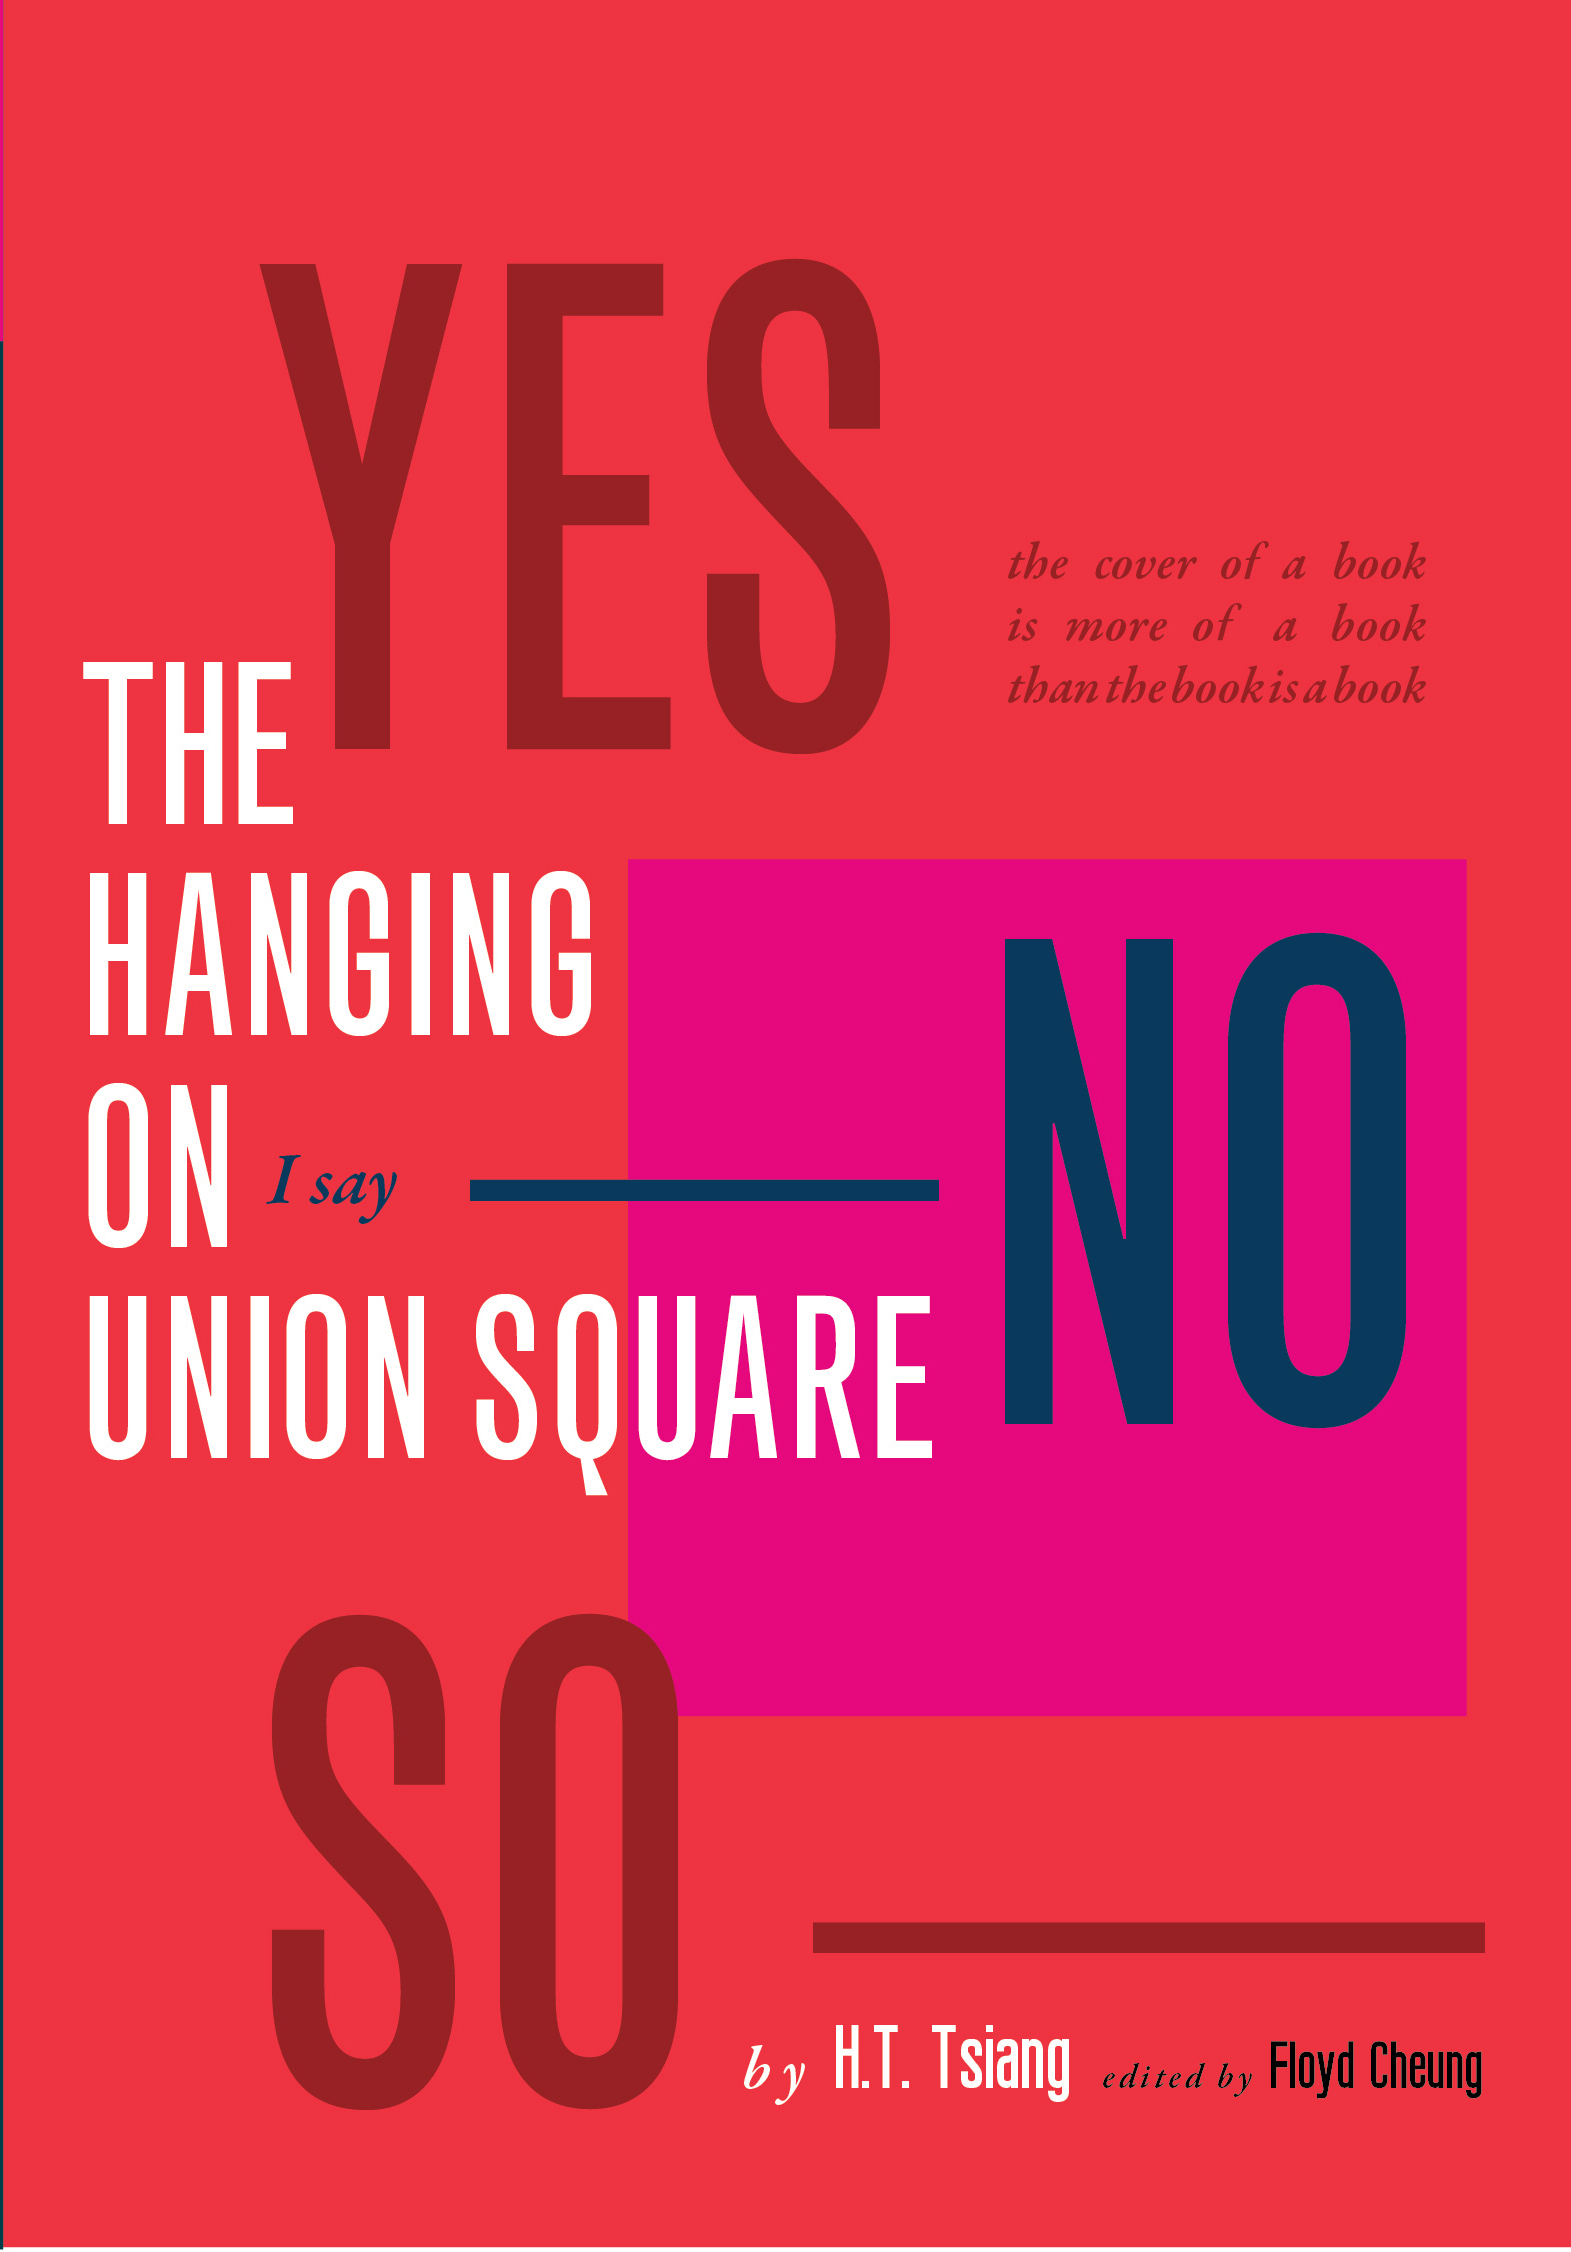 The Hanging on Union Square by H.T. Tsiang: